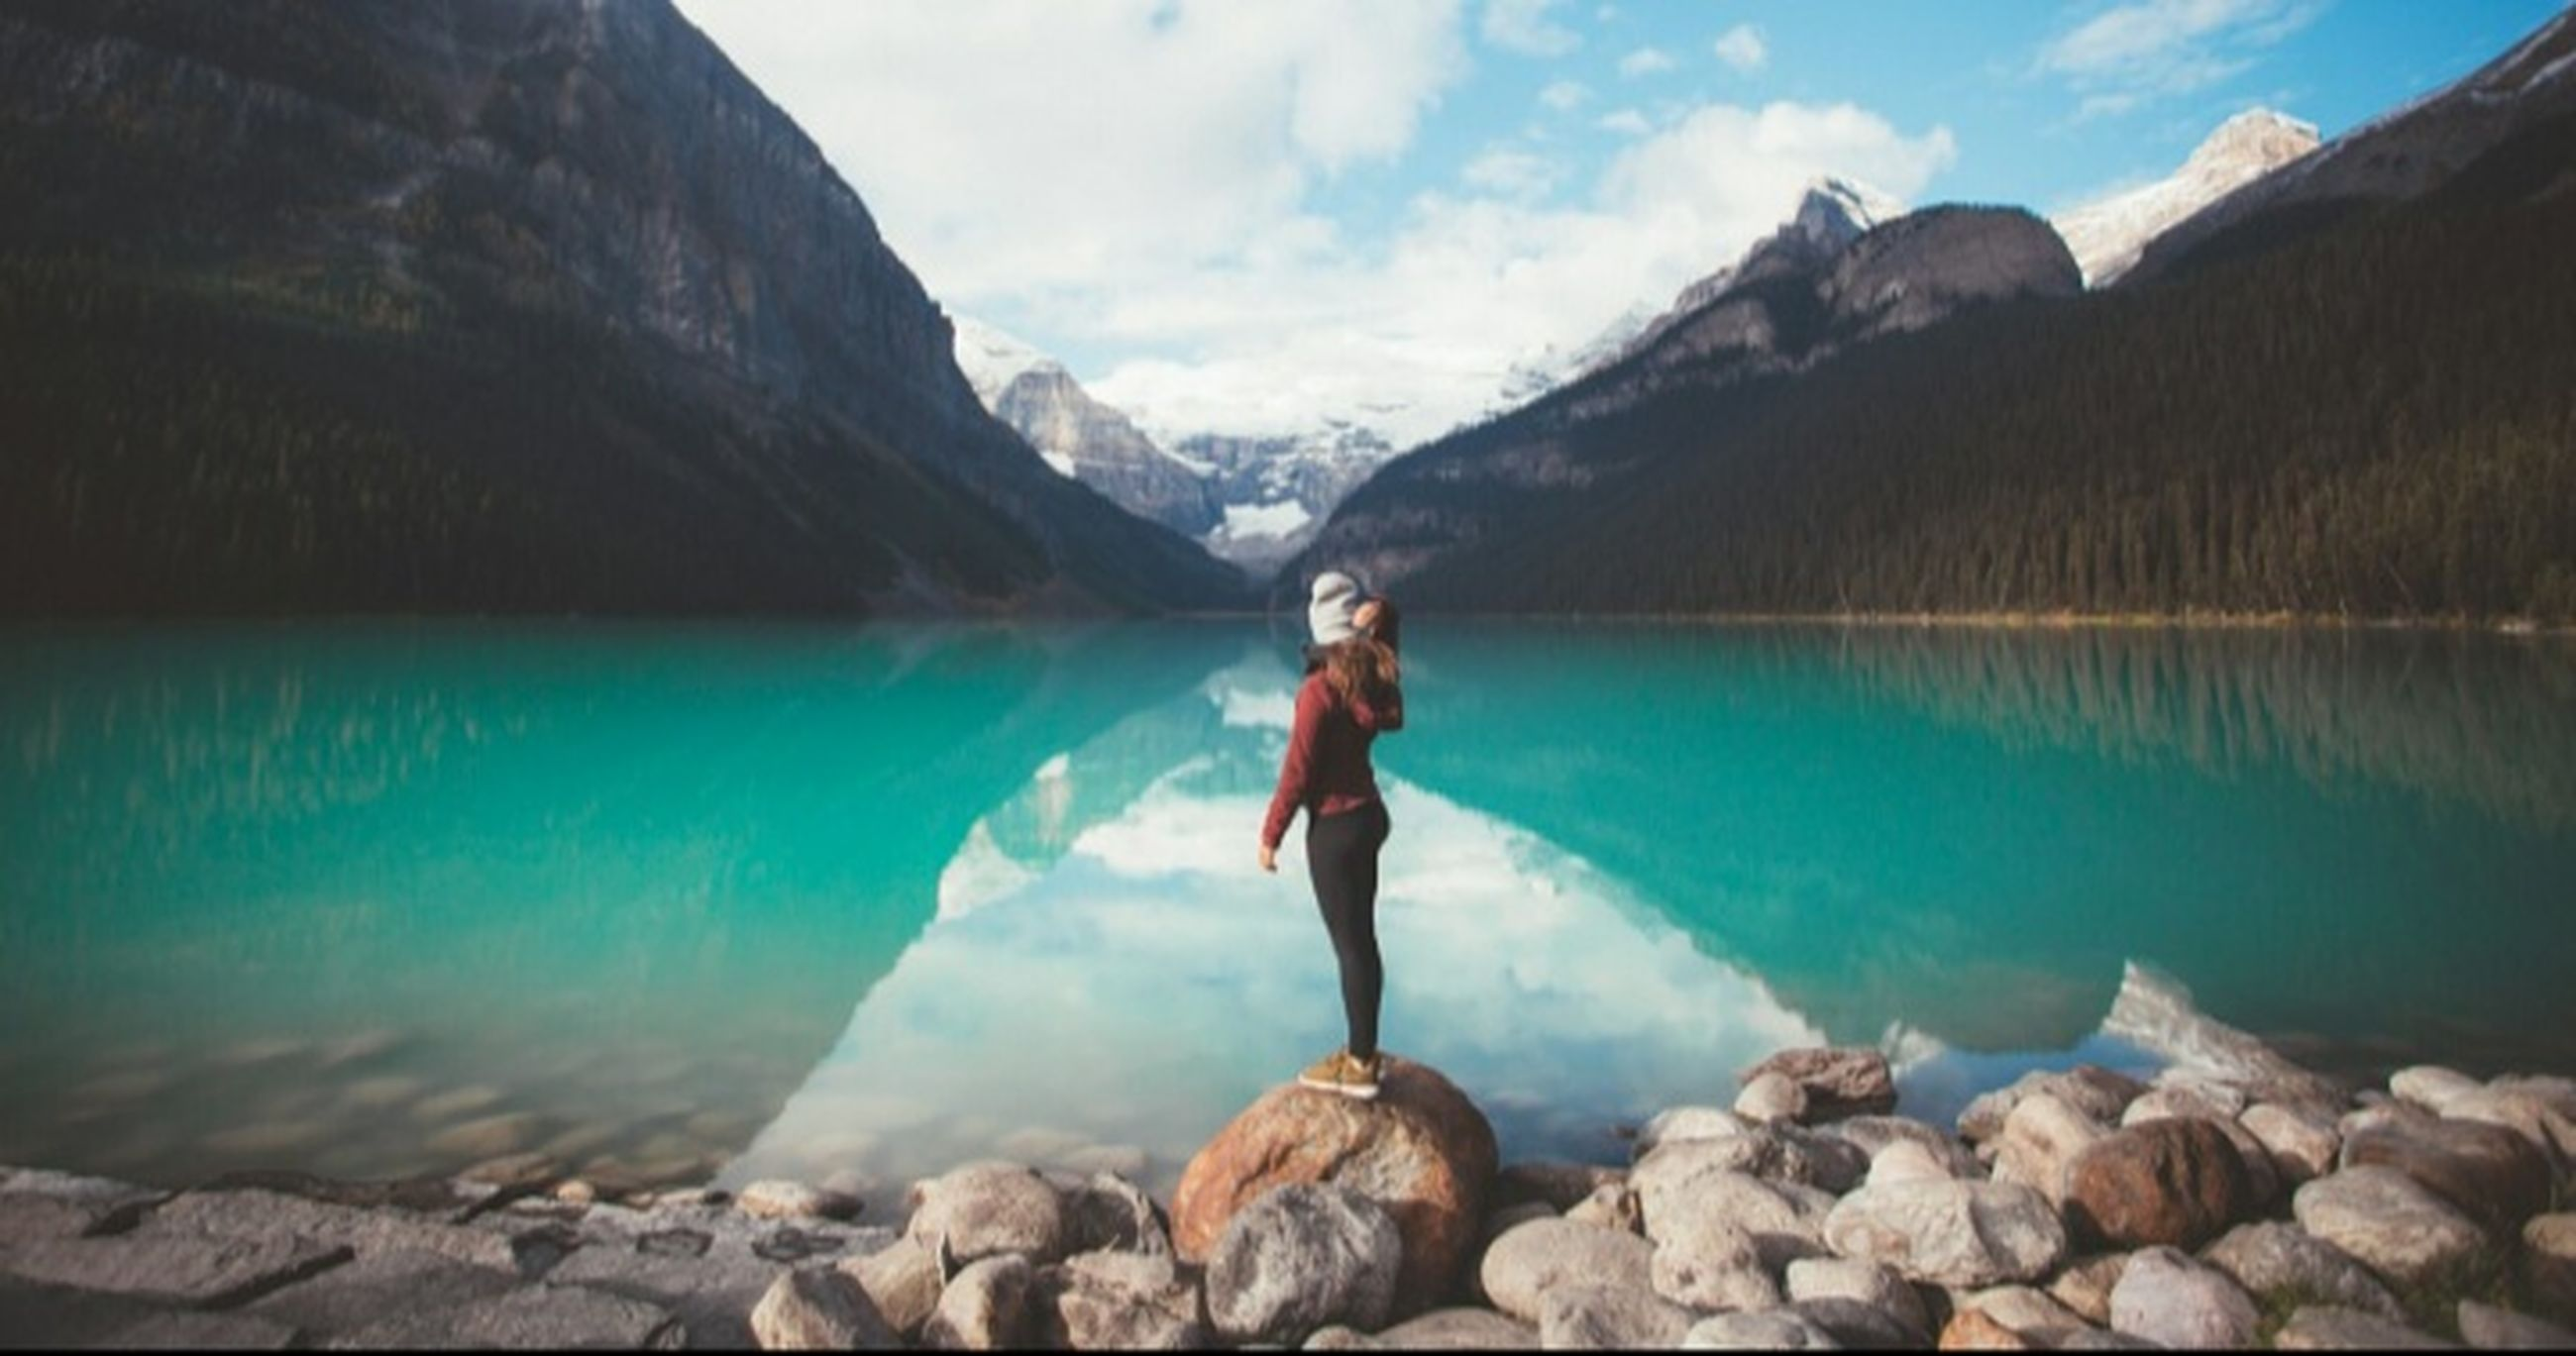 water, mountain, solid, rock, full length, one person, rock - object, beauty in nature, nature, scenics - nature, lake, holiday, vacations, sky, trip, day, cloud - sky, standing, mountain range, outdoors